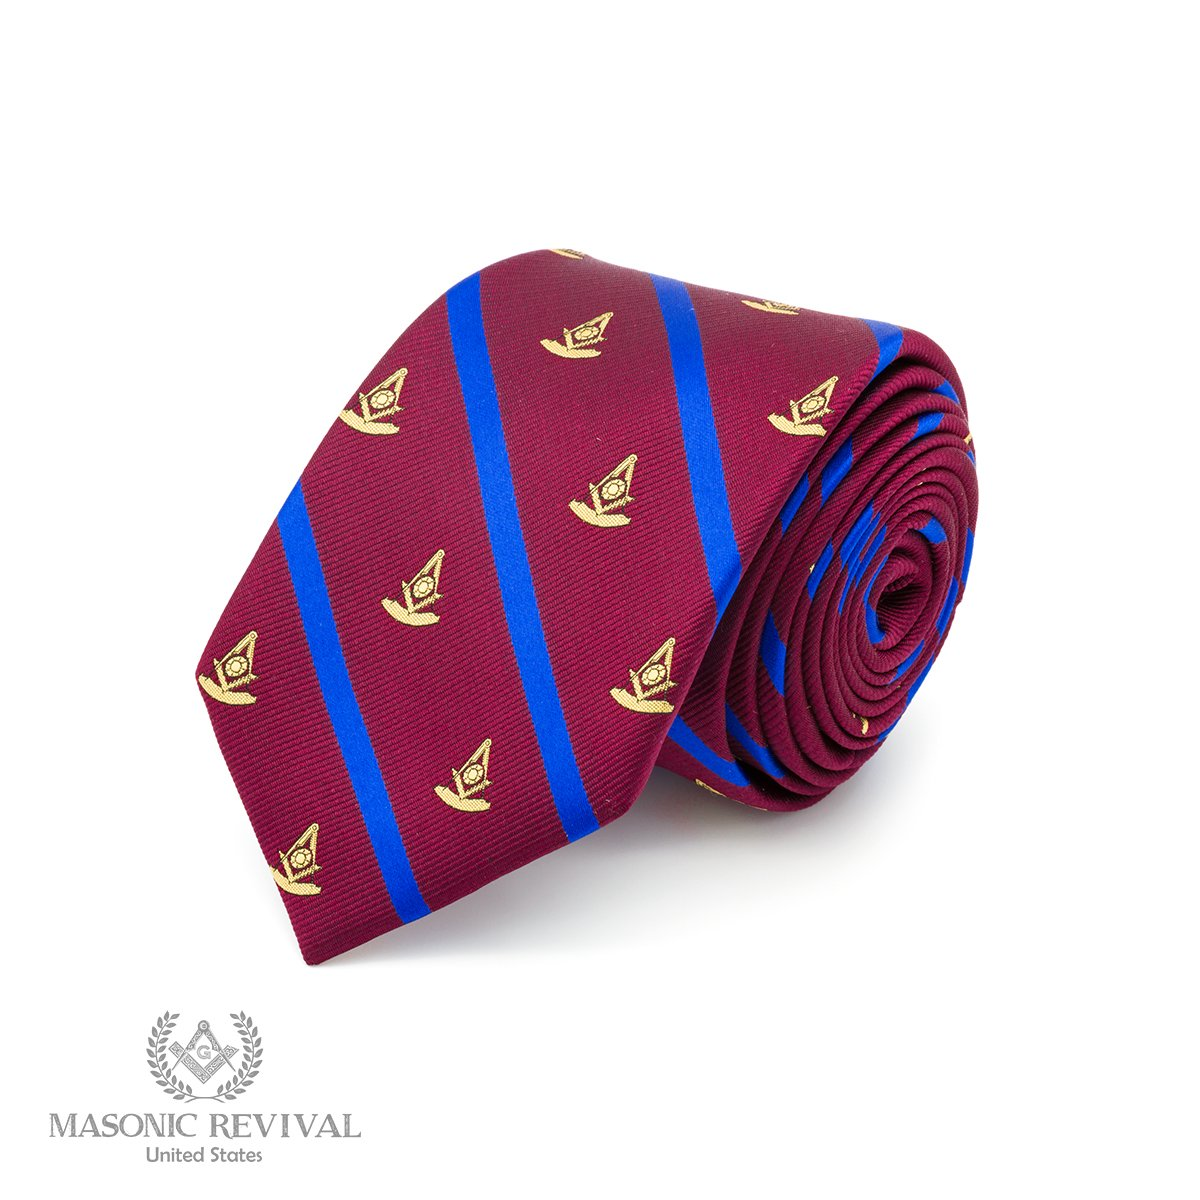 The Regal Past Master Necktie by Masonic Revival